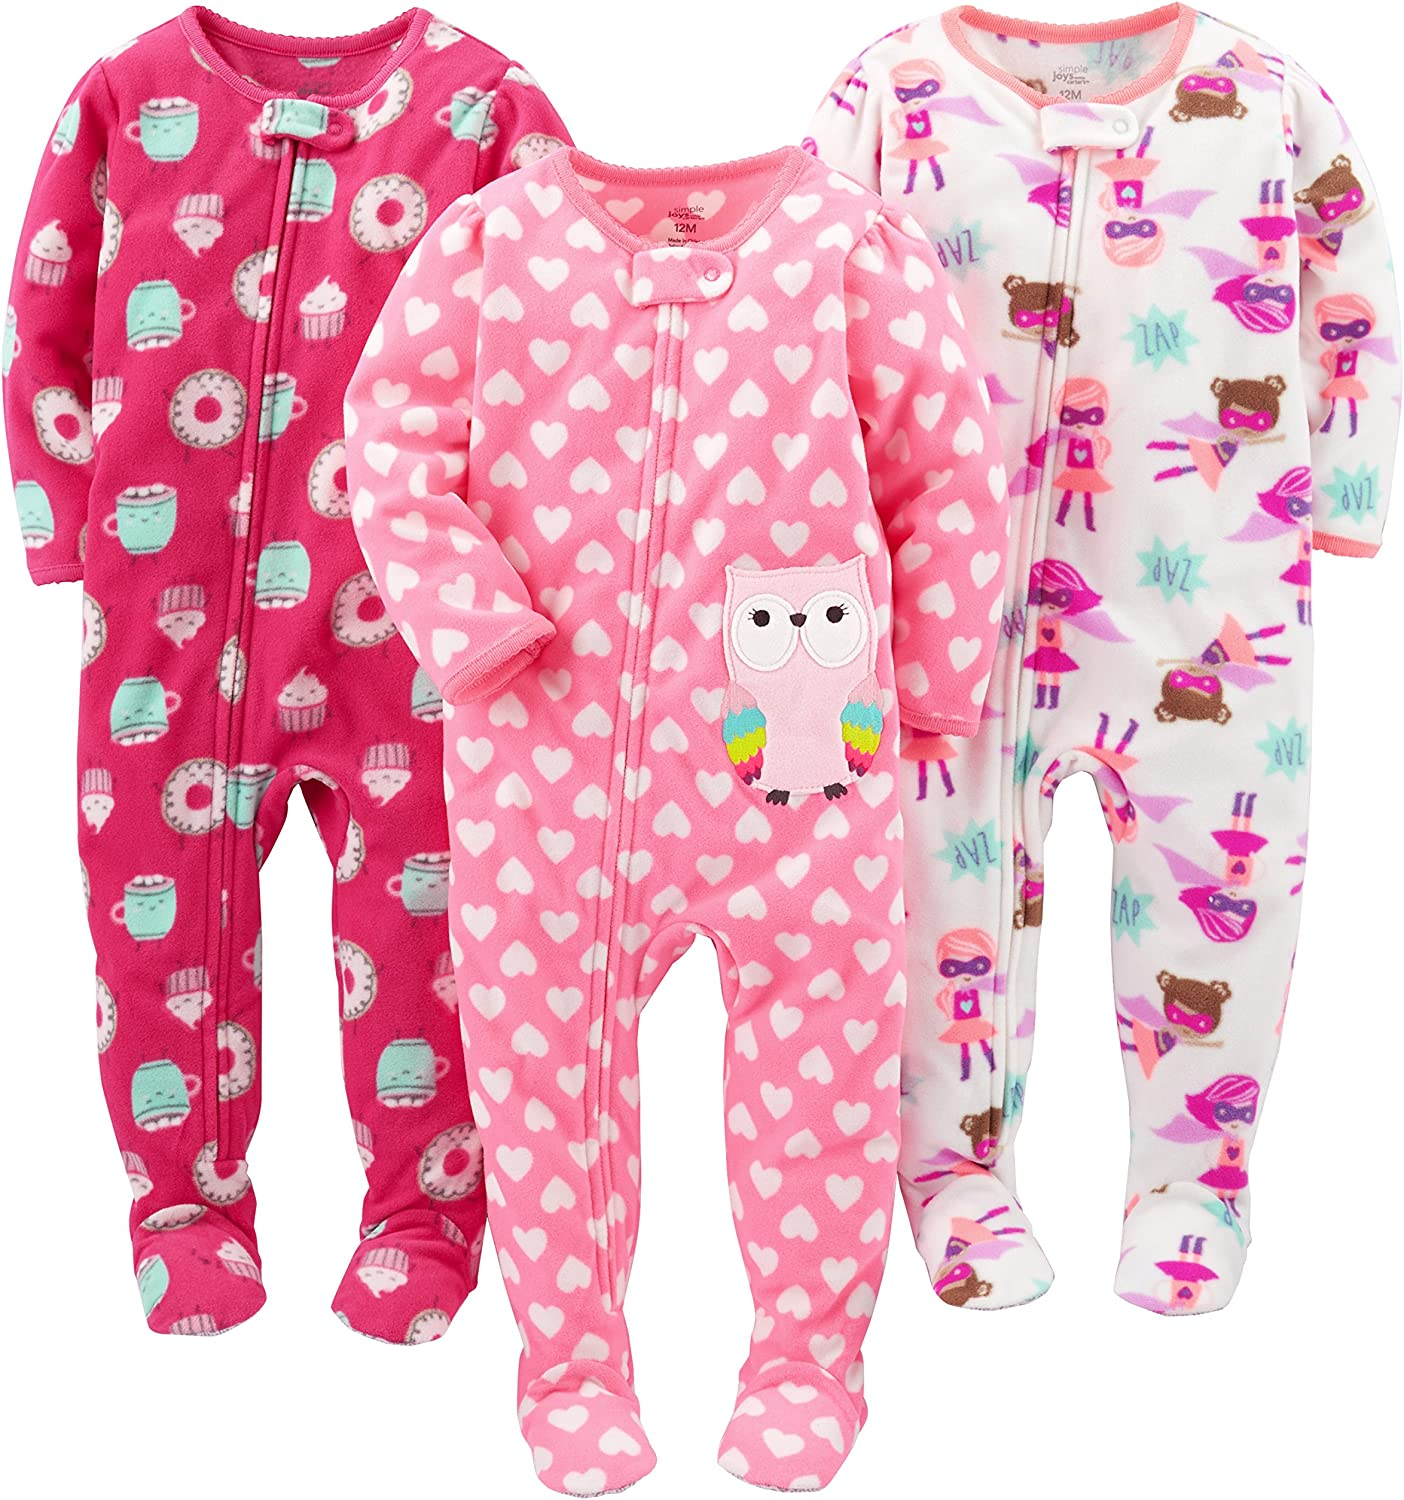 Pacco da 3 Simple Joys by Carters 3-Pack Loose Fit Flame Resistant Fleece Footed Pajamas Bambina